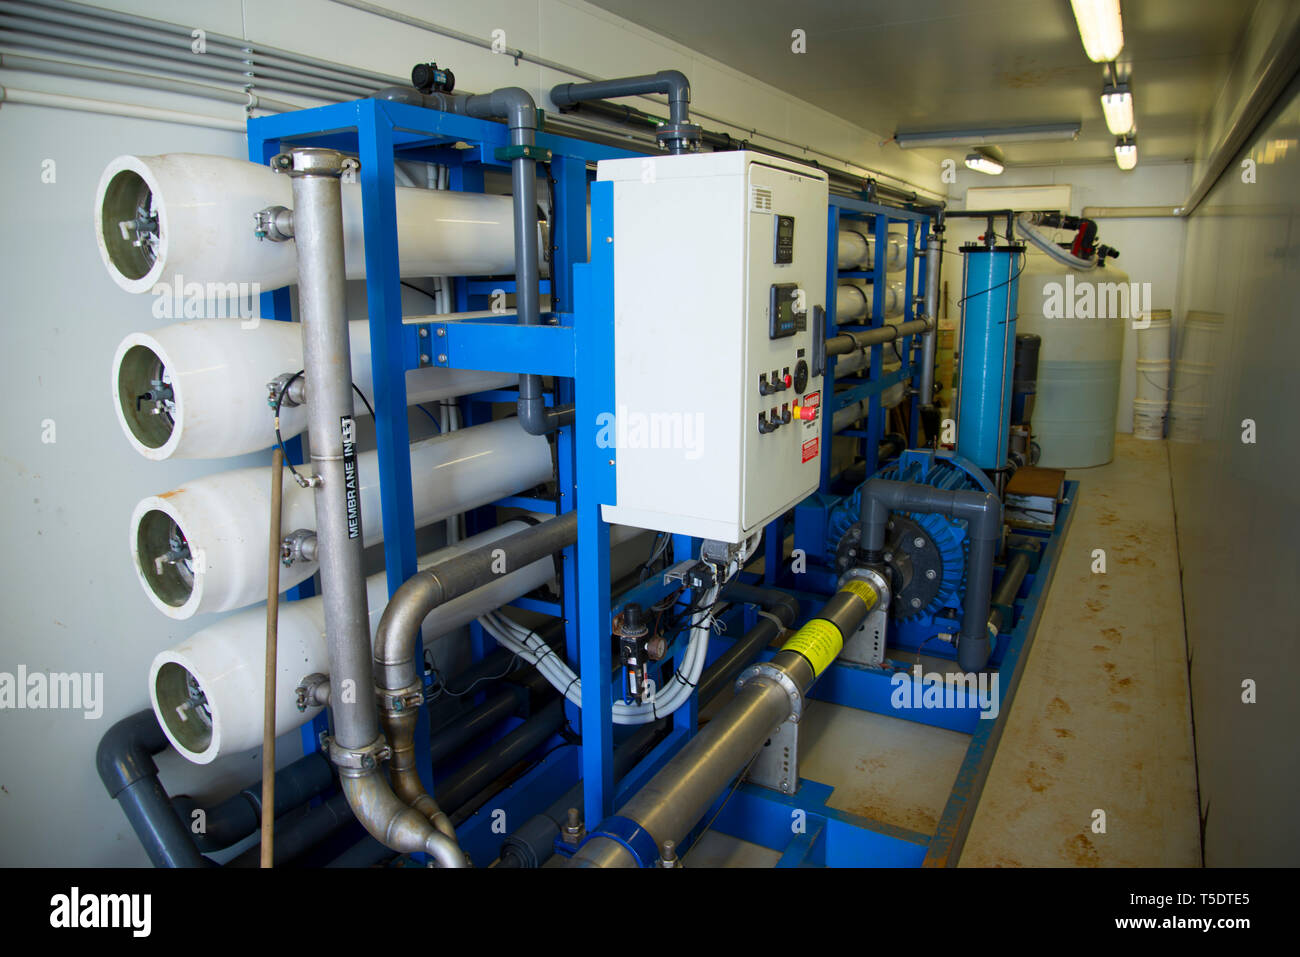 Industrial Reverse Osmosis Water Filter - Stock Image